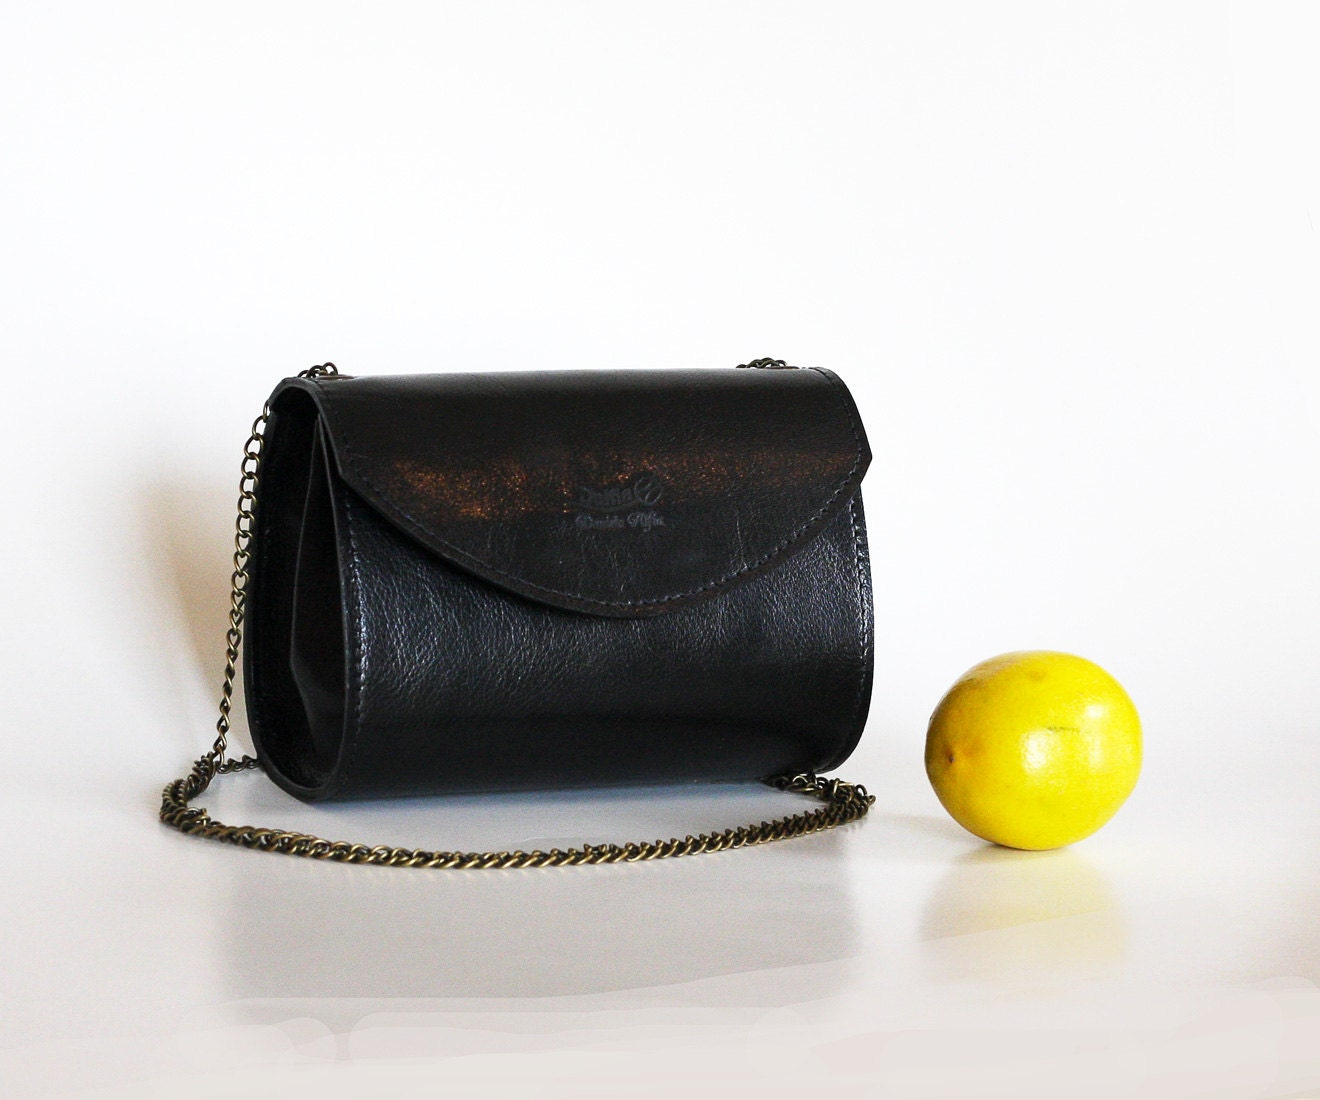 Black leather handbag Black purse Evening purse Small black